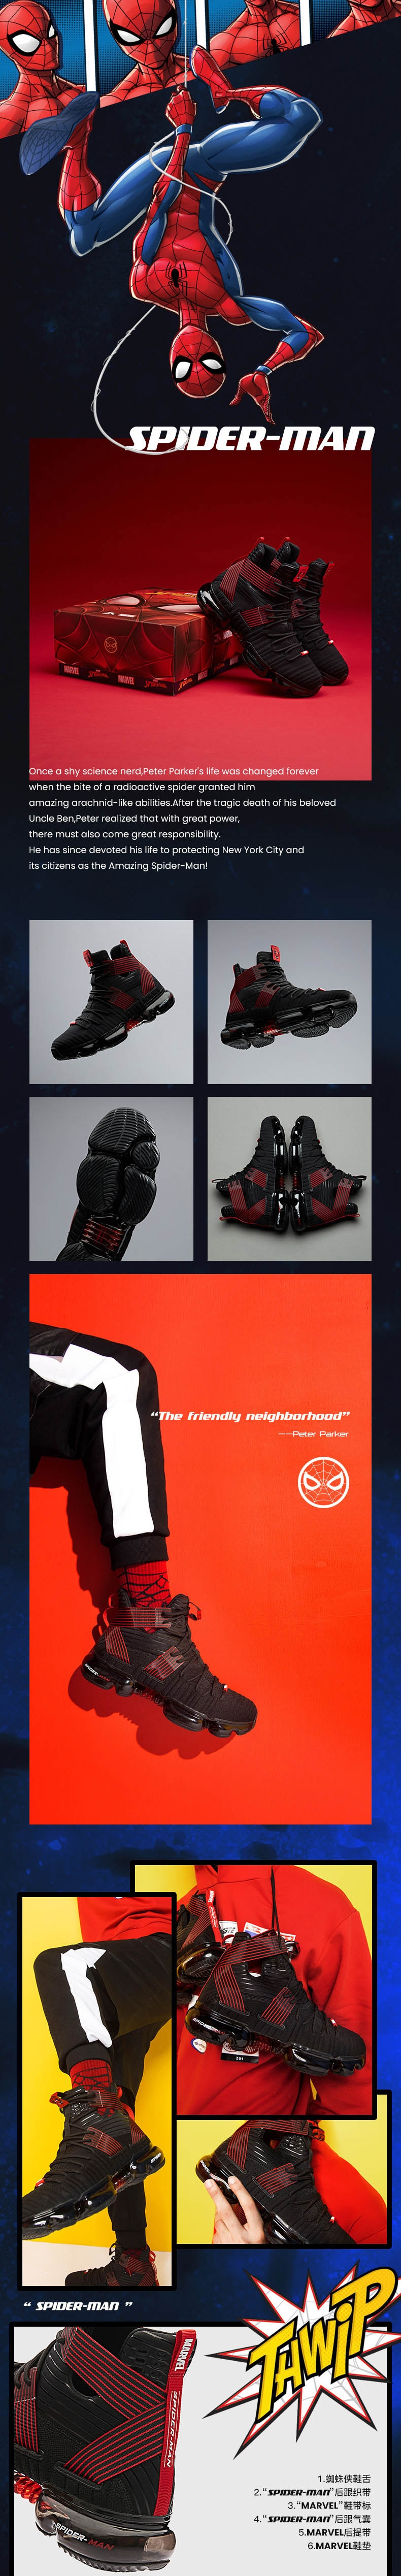 "Anta X Seeed Series Marvel Memorial Edition - ""SPIDER MAN"" Basketball Fashion Sneakers - Black"